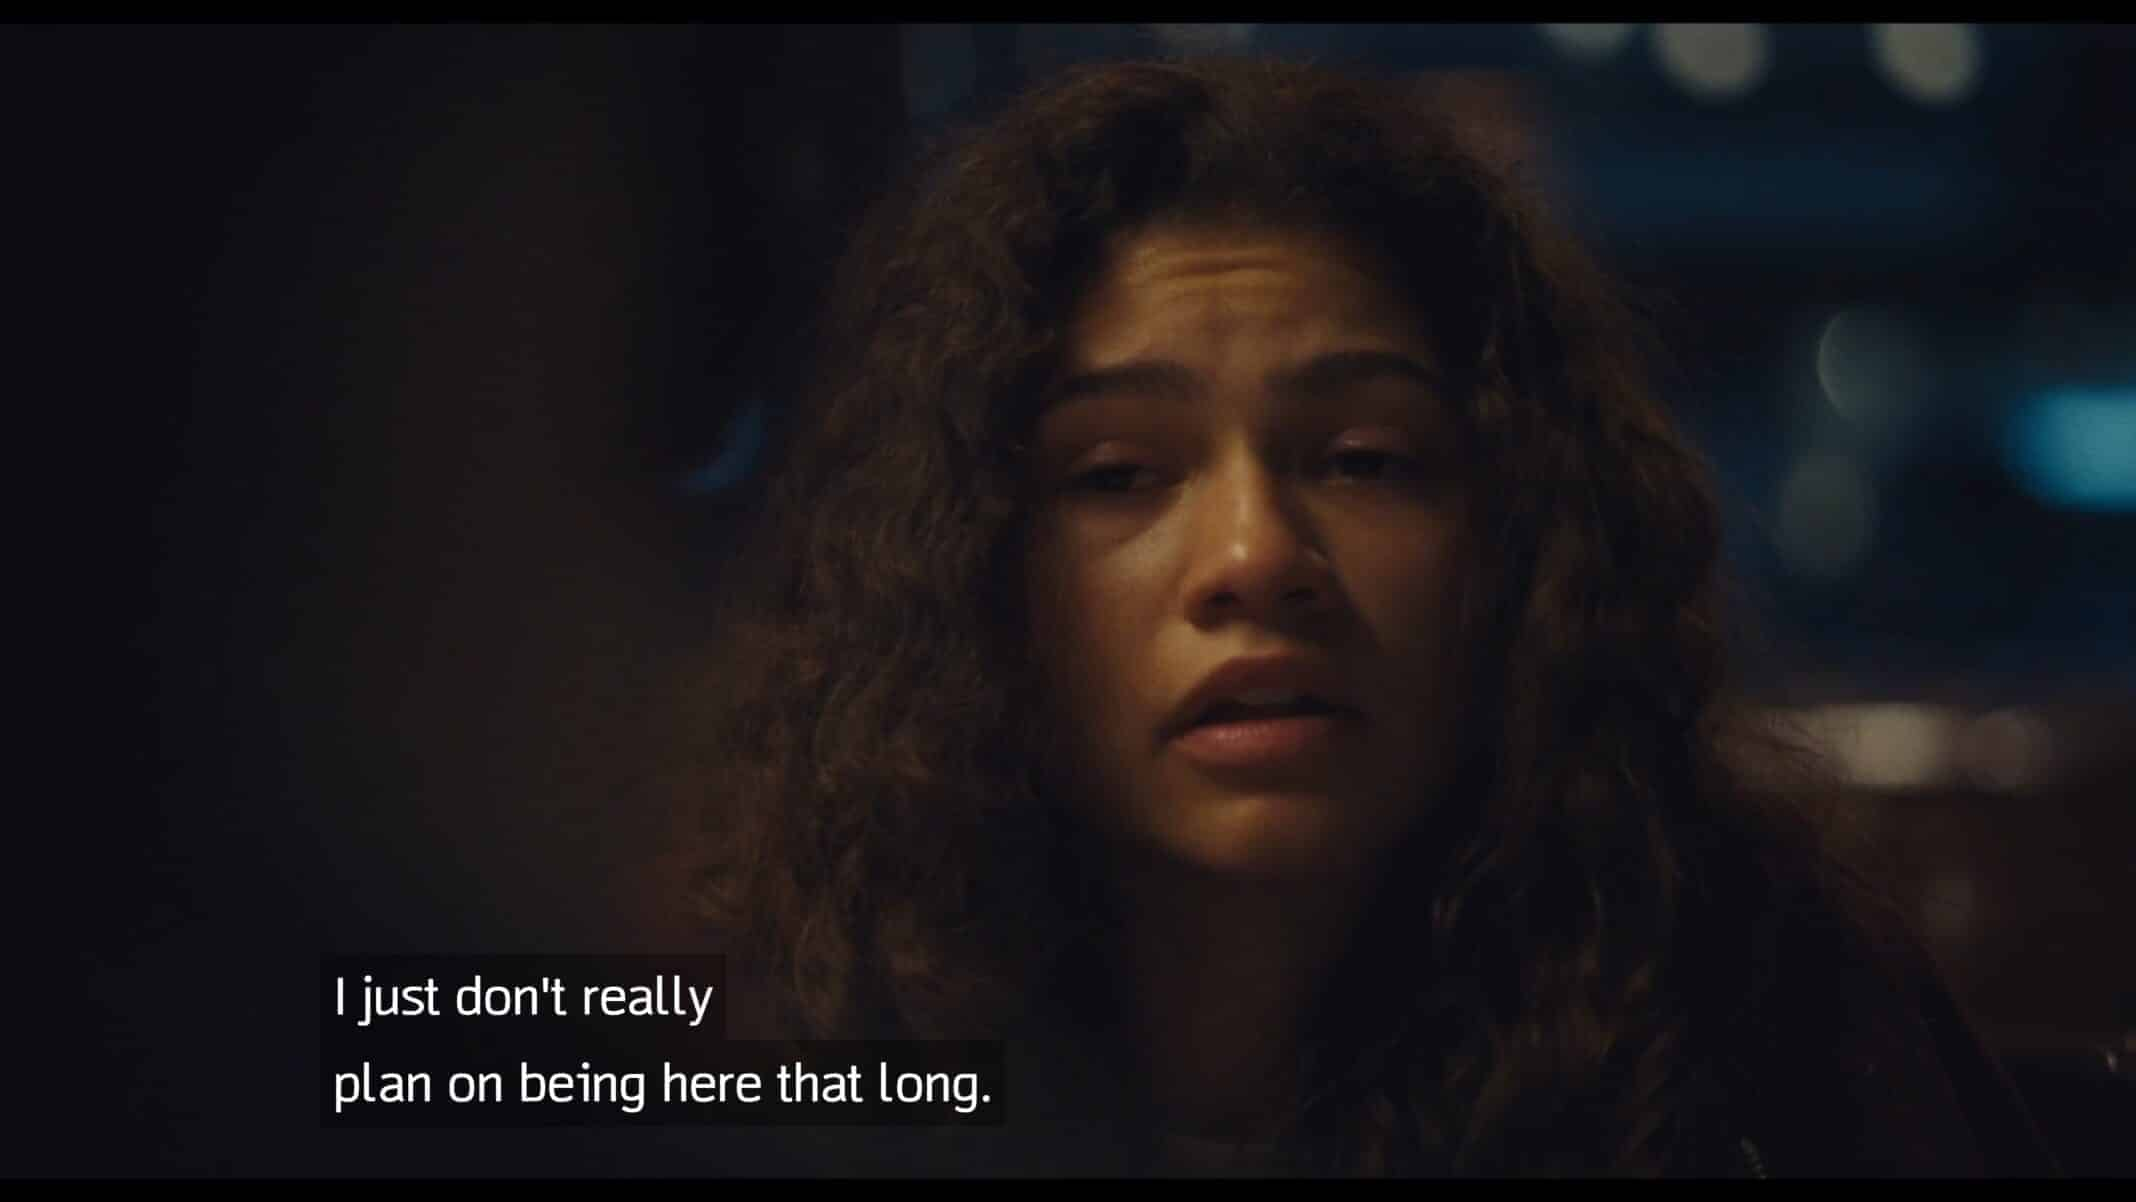 Rue talking about her suicidal thoughts.